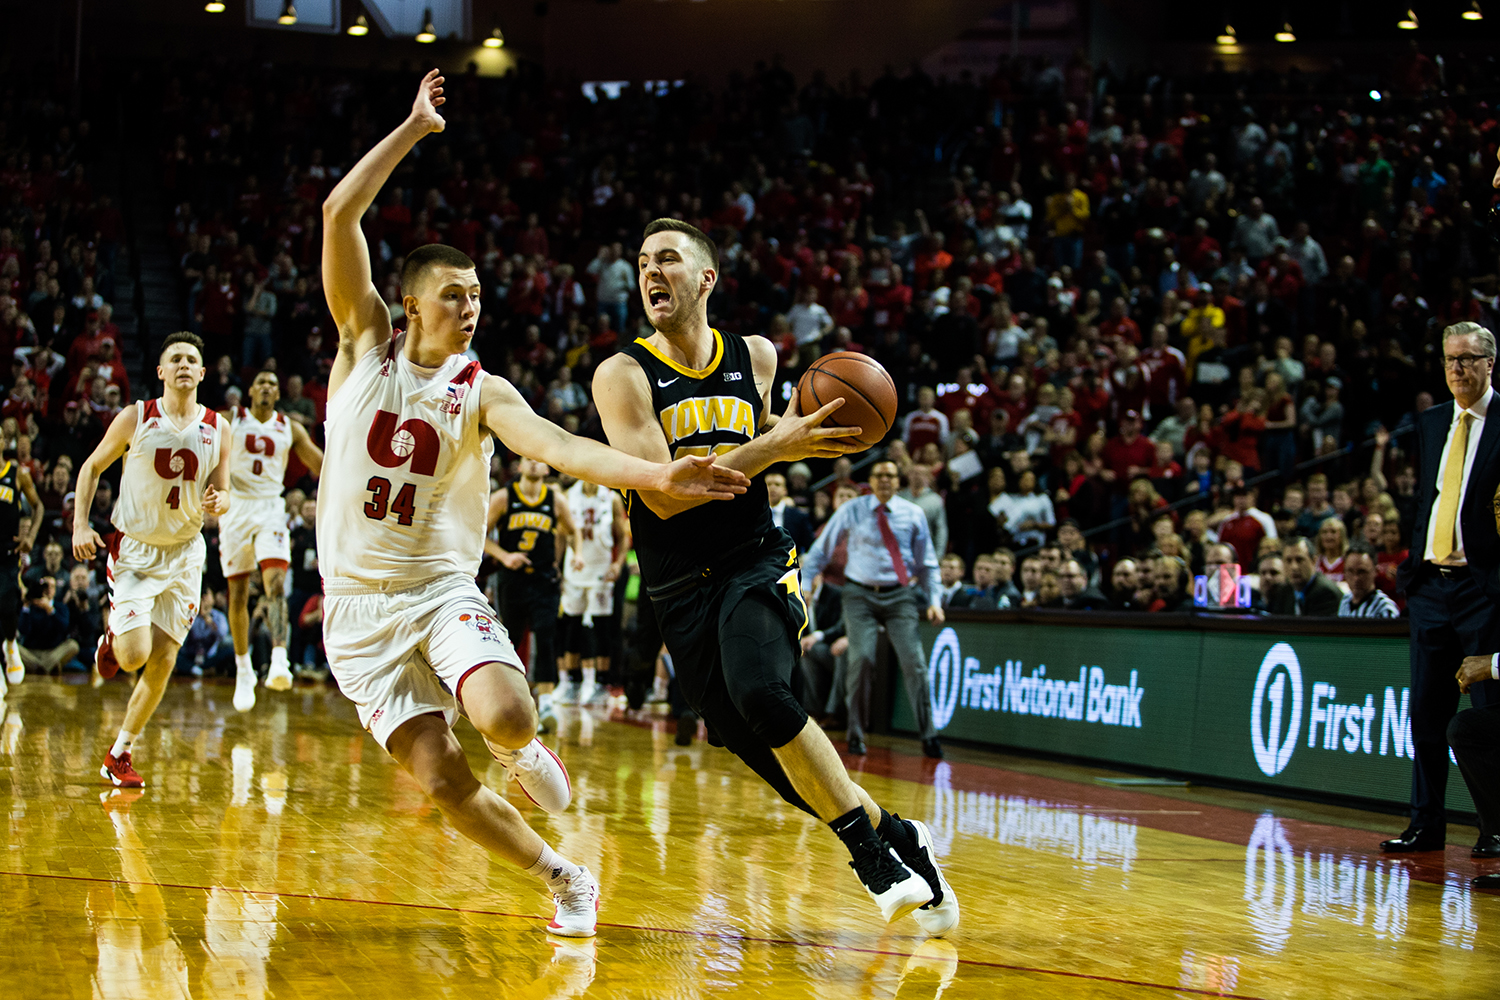 Who's hot, who's not: Breaking down the Big Ten tournament matchups